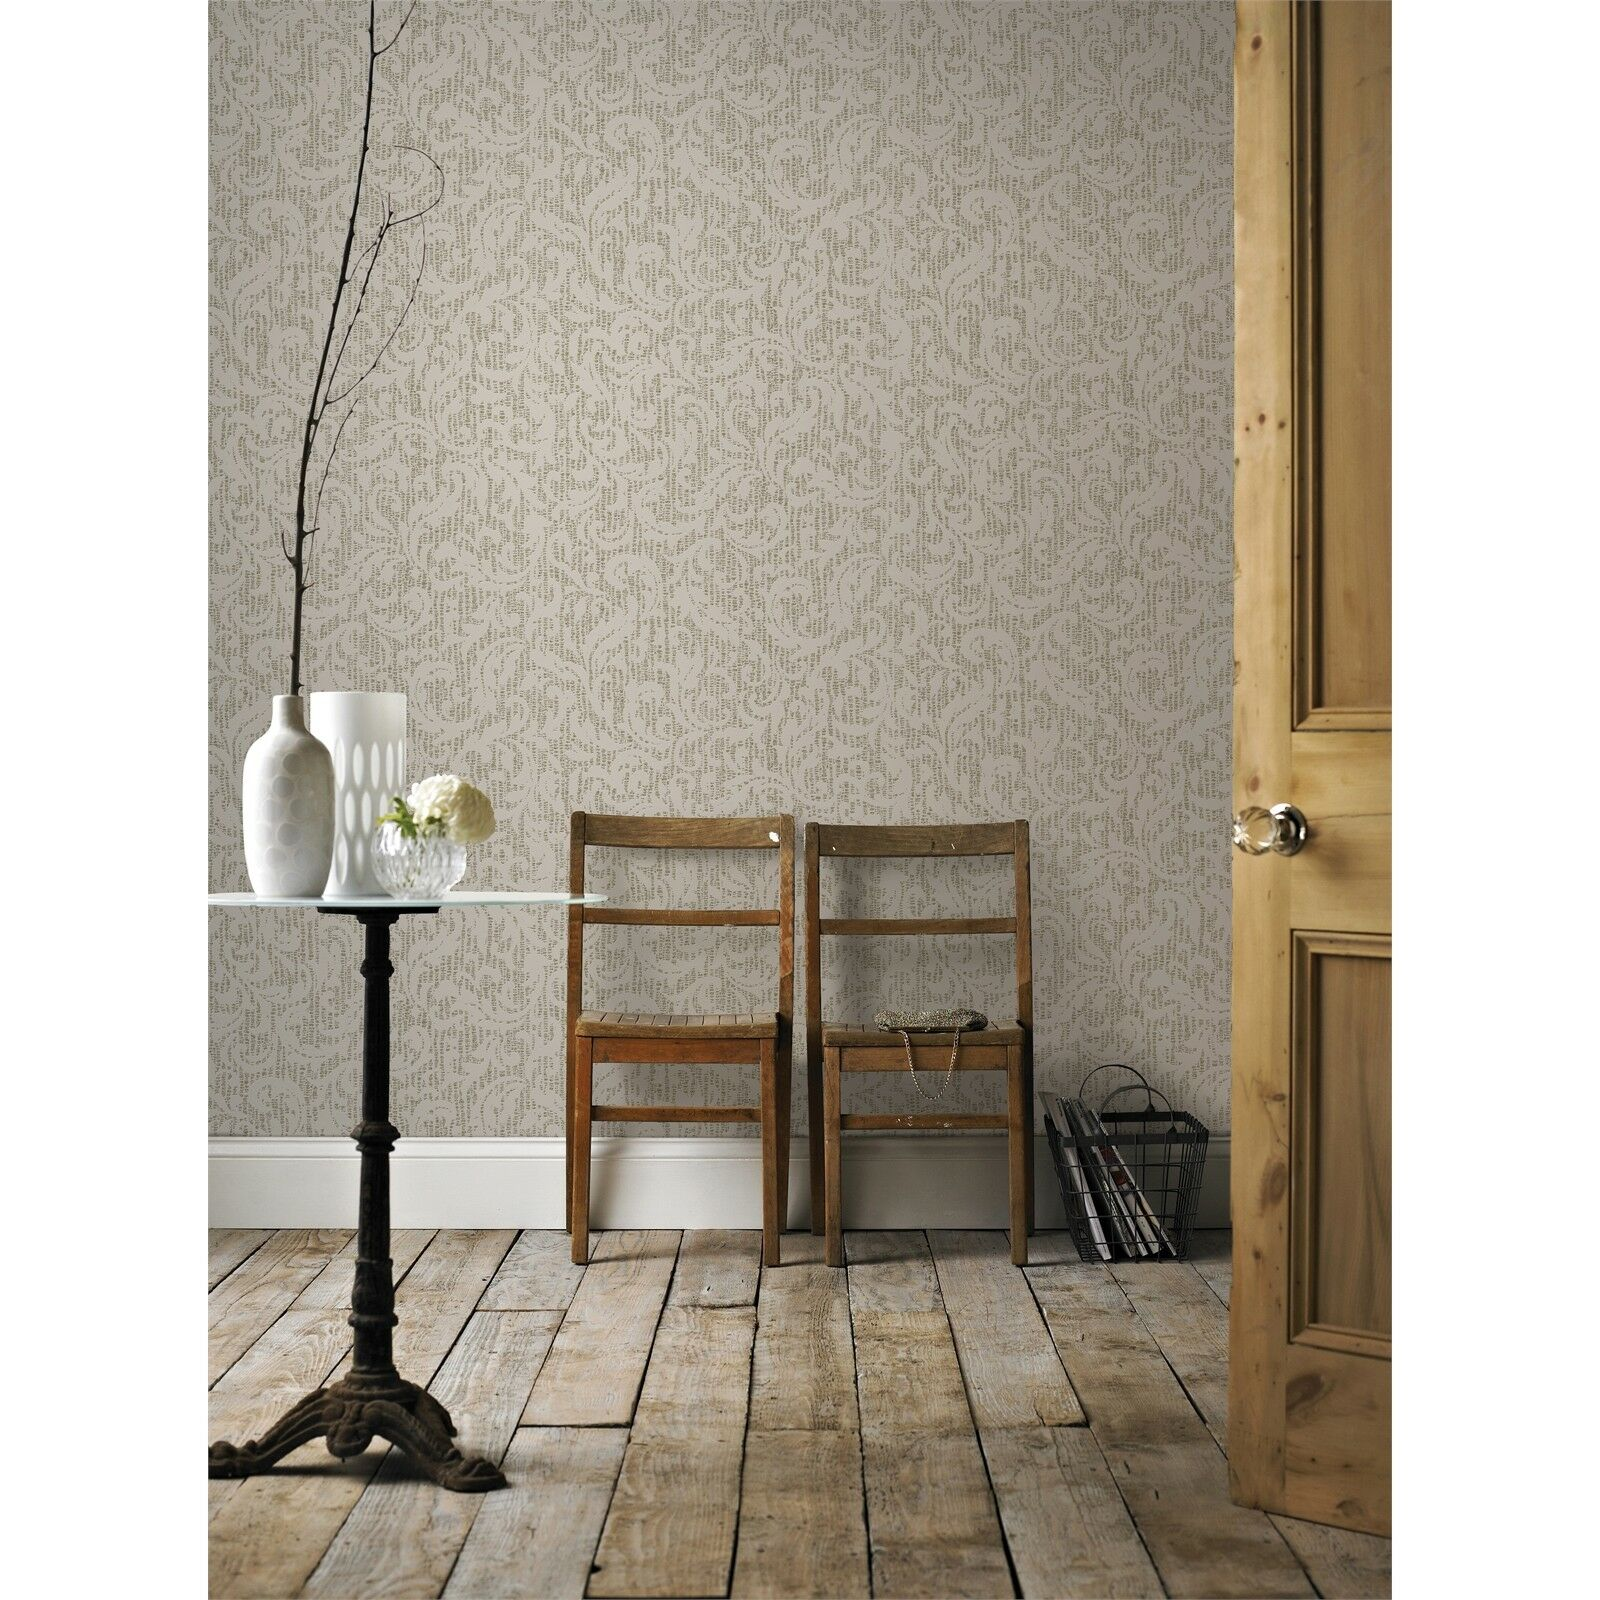 Boutique NW CASHMERE CREAM gold WALLPAPER 52cmx10m Extra Washable UK Made